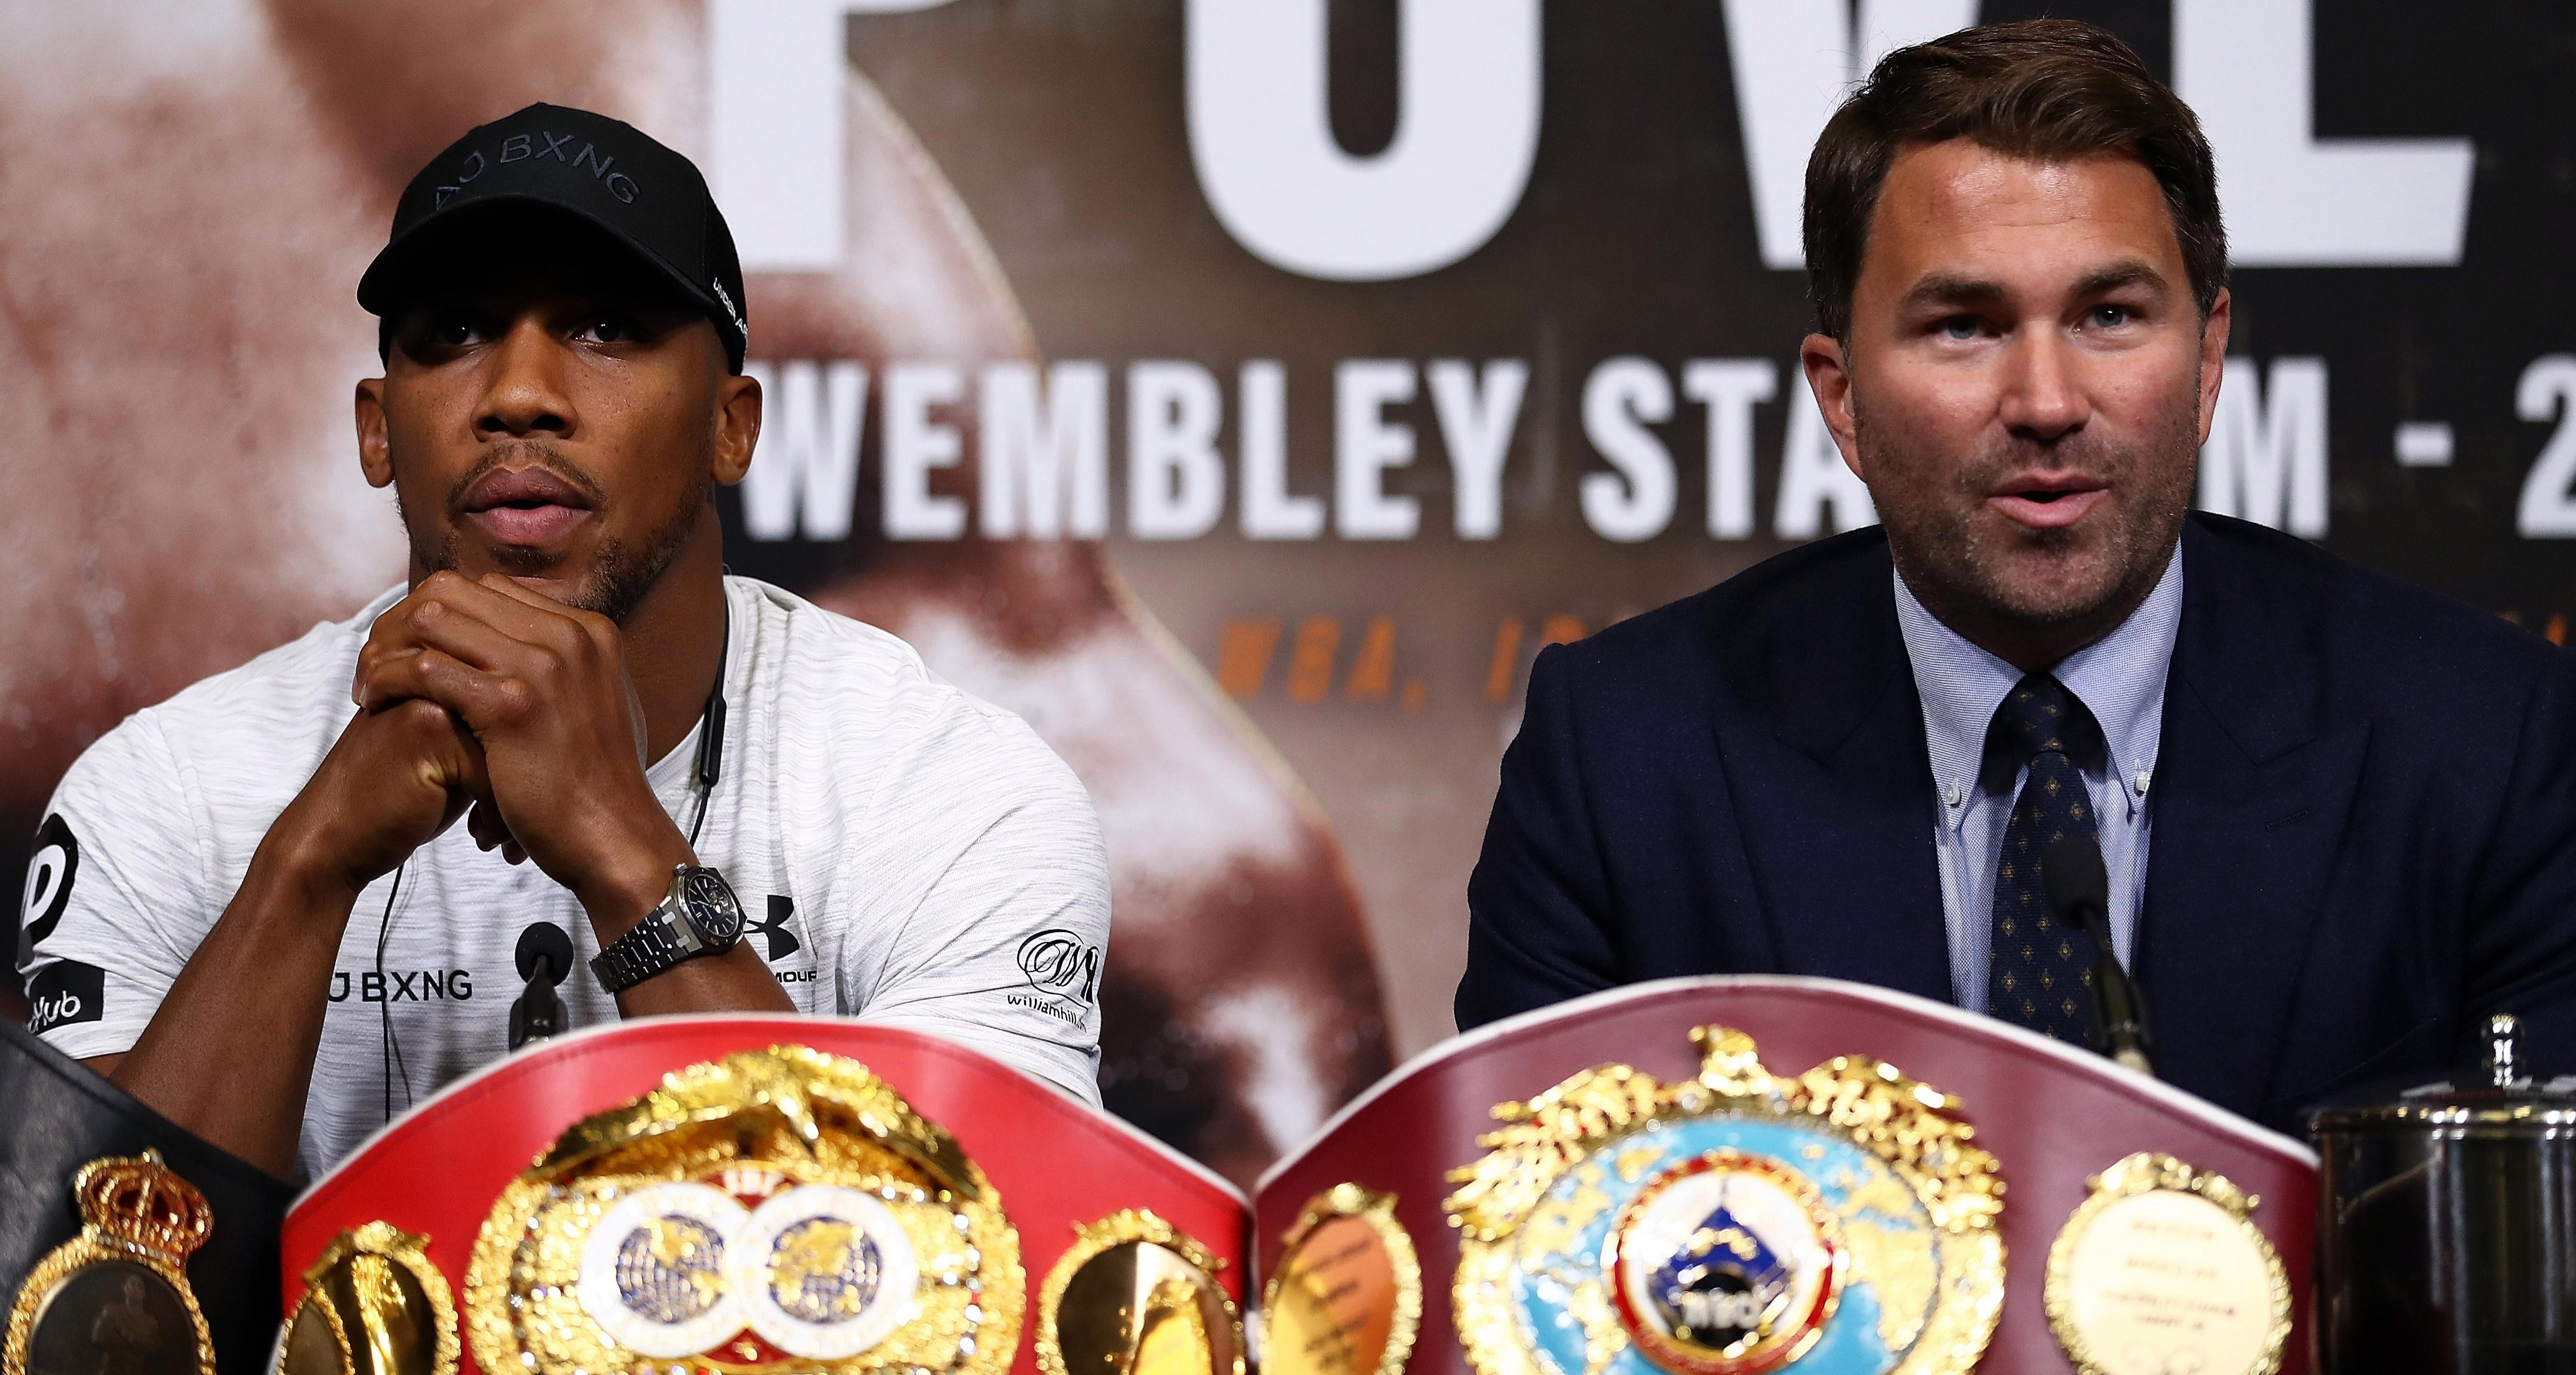 Anthony Joshua has been told by Lennox Lewis to make his promoter Eddie Hearn set up a fight with Deontay Wilder